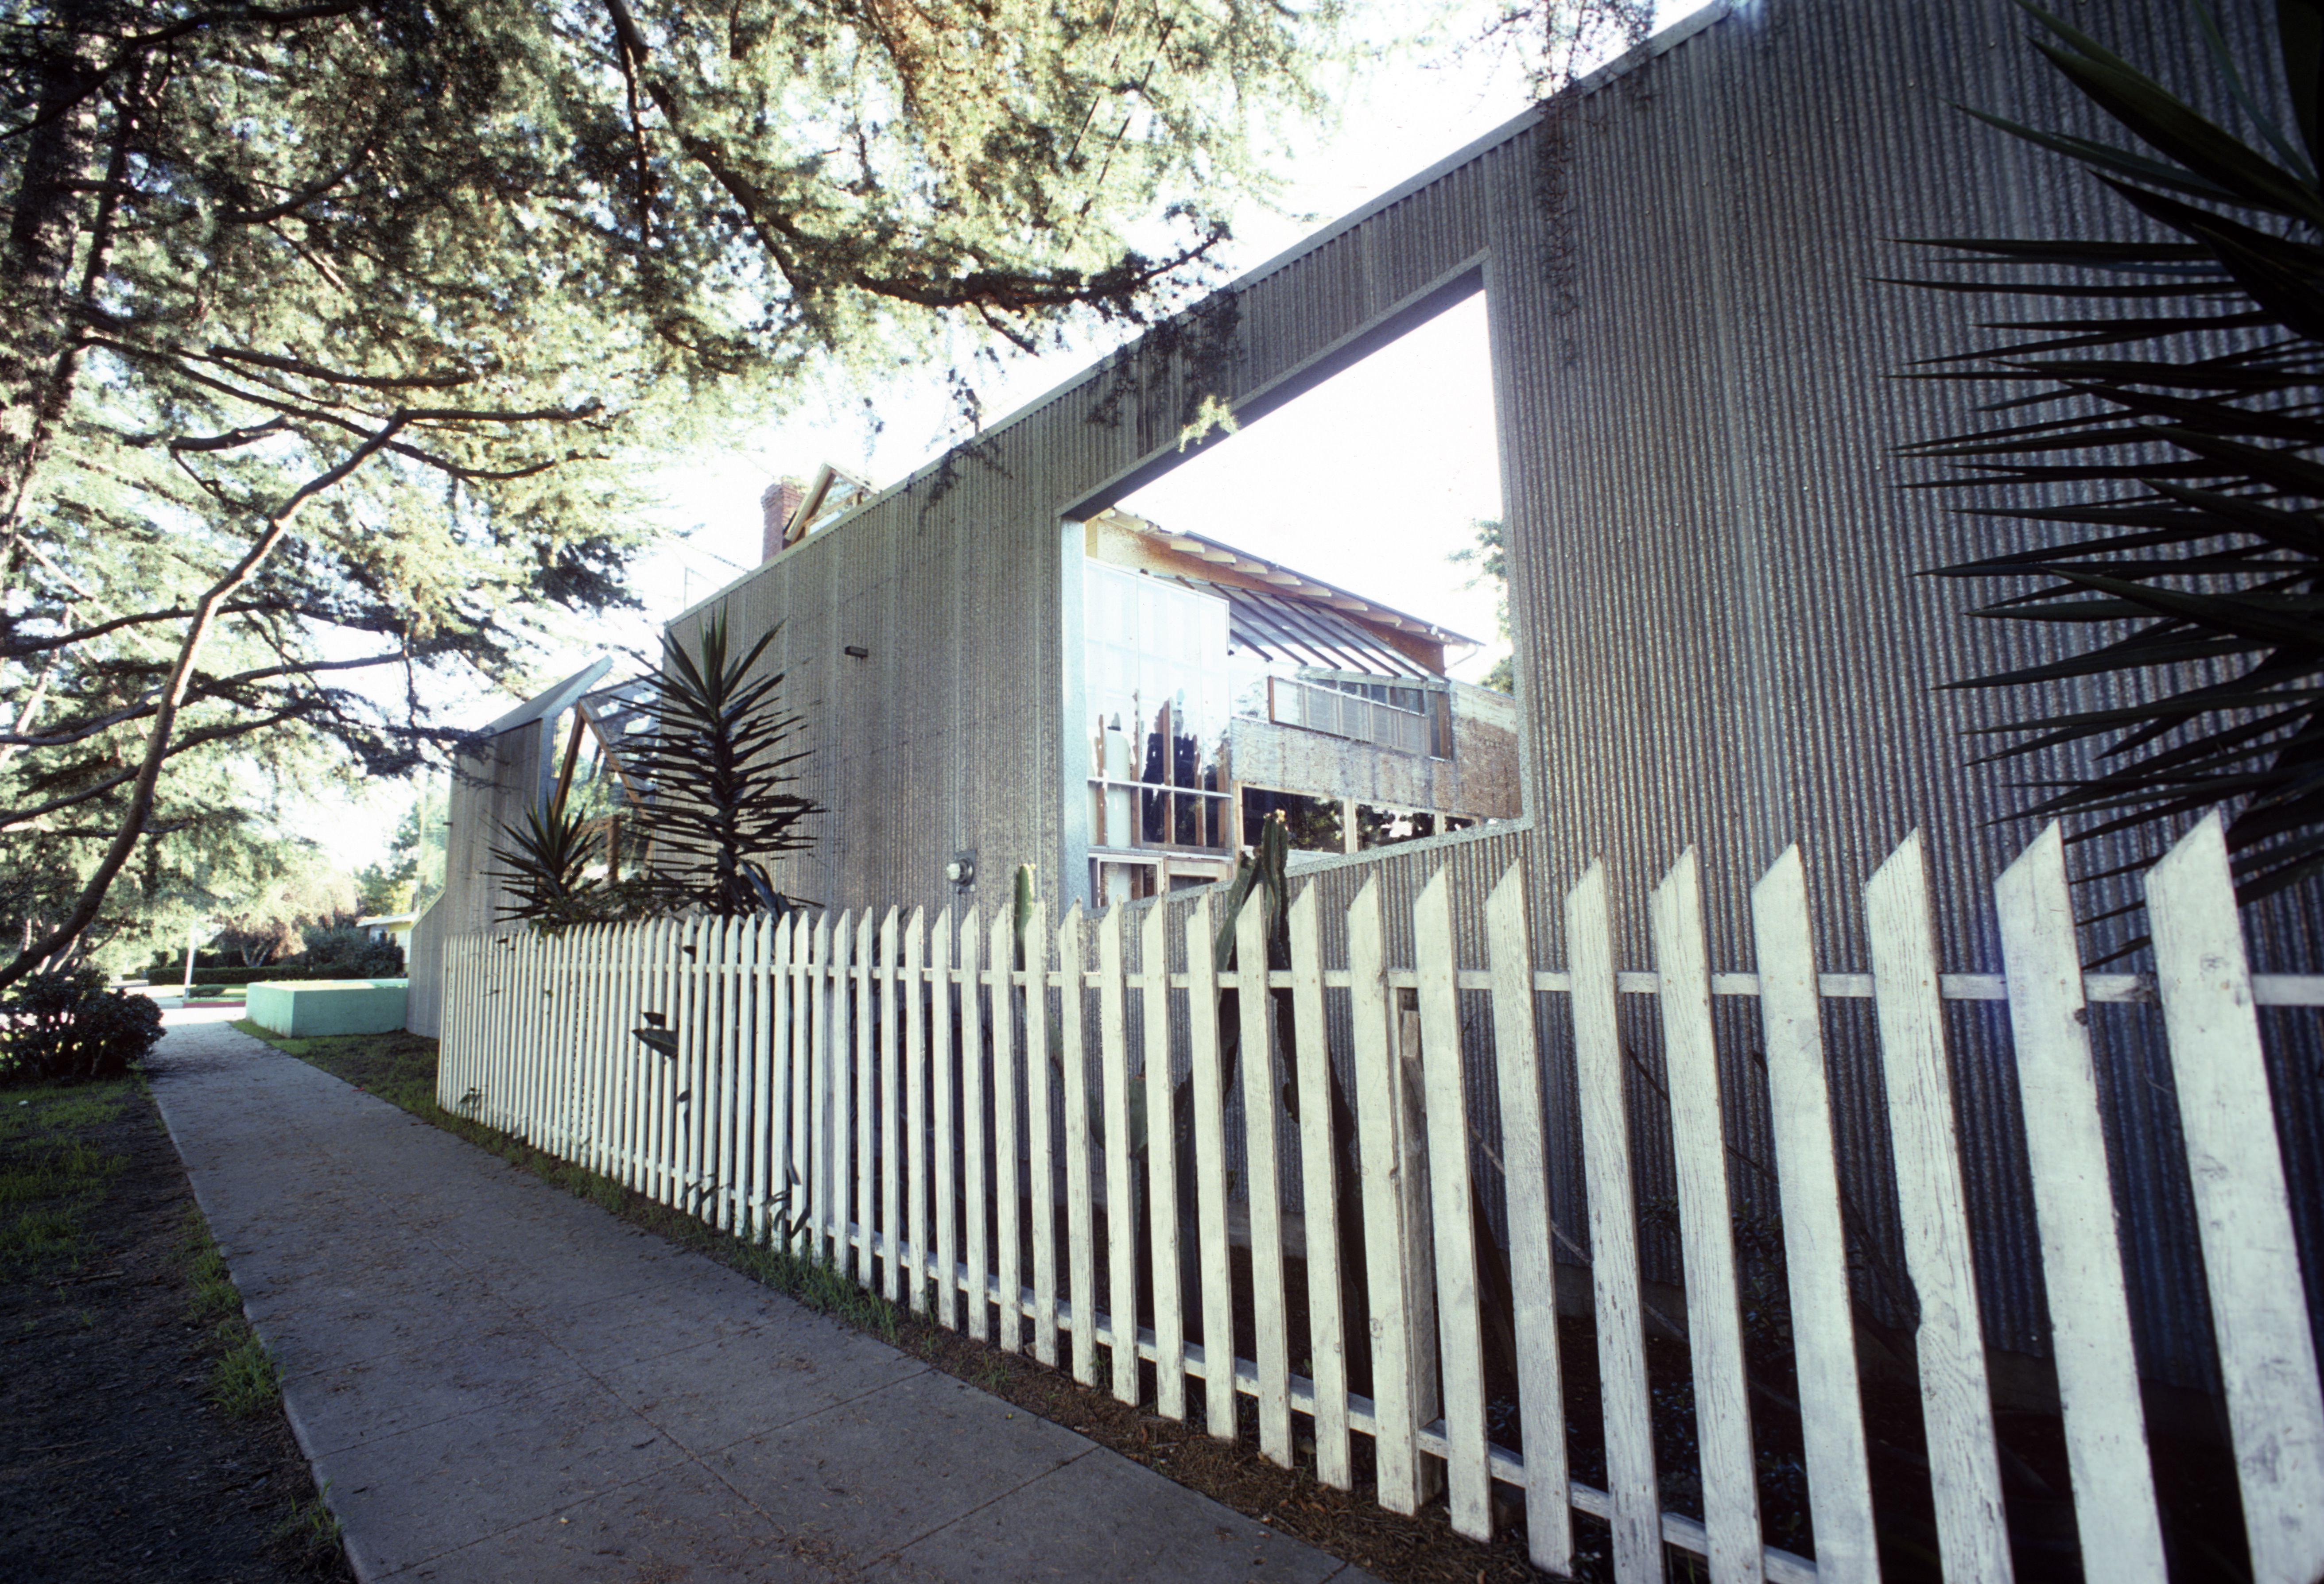 Exterior of Gehry's home shows picket fence in front of modernist detached curtain facade, 1980